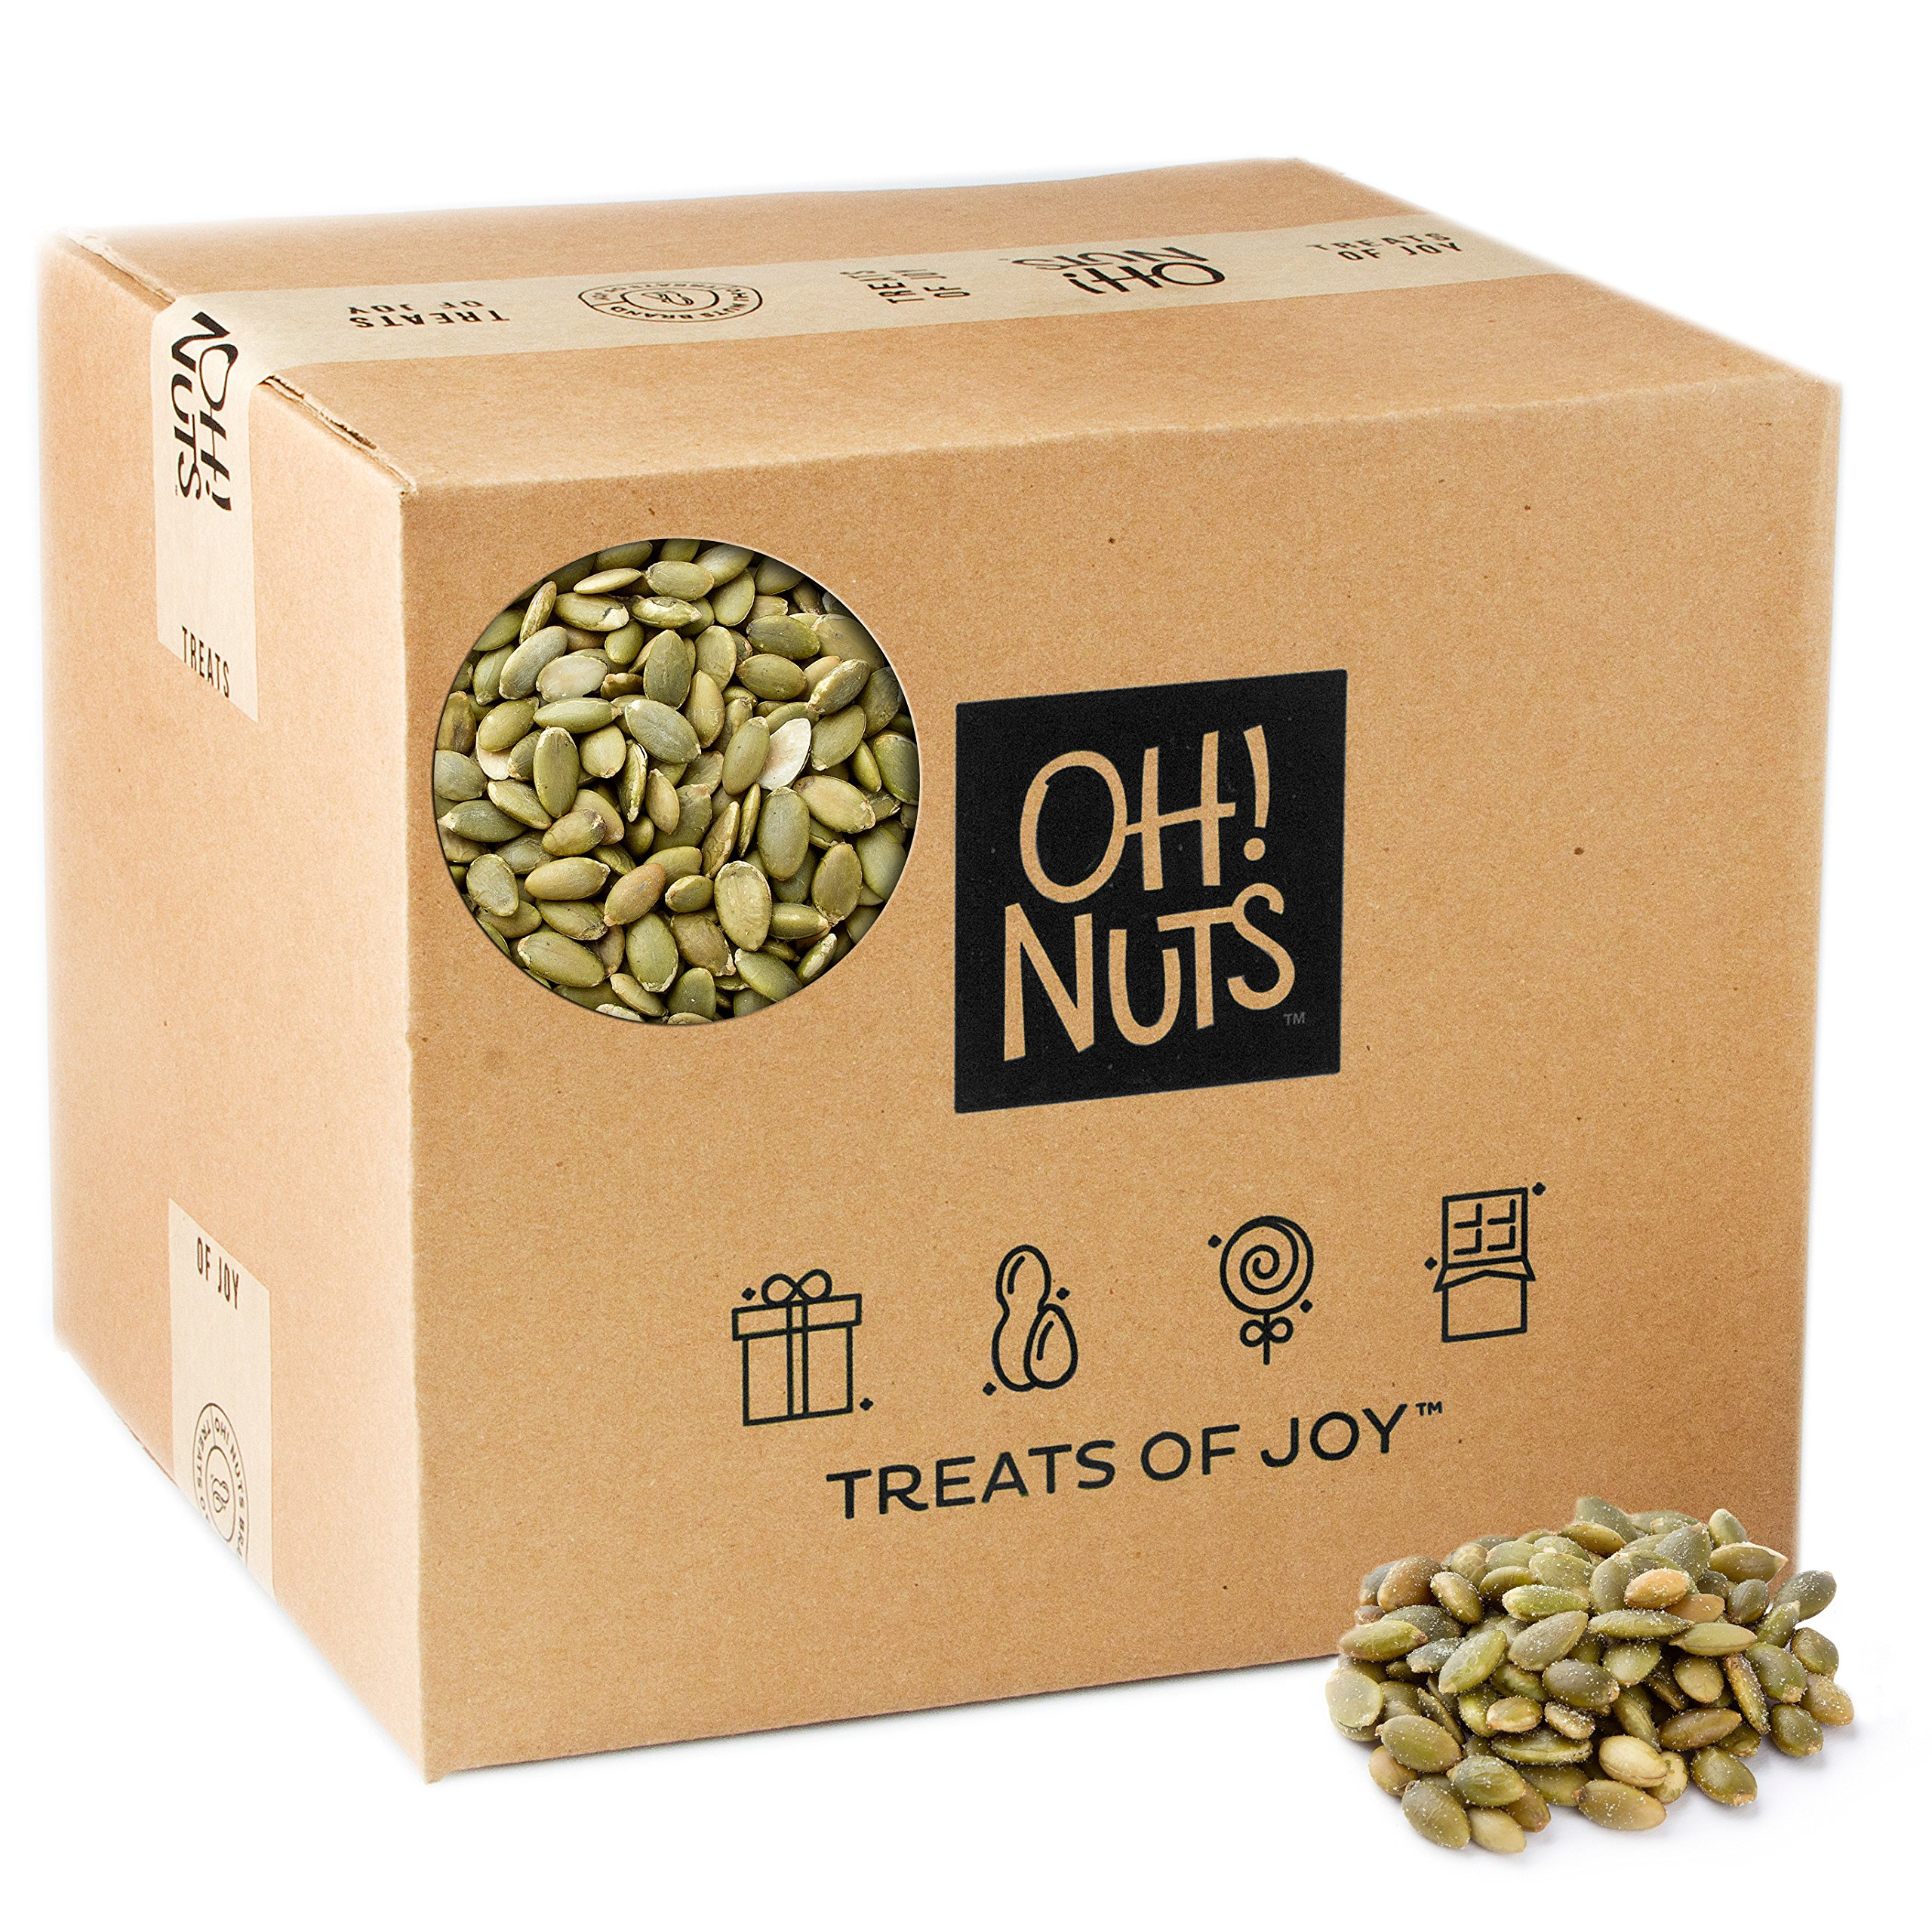 Pumpkin Seeds Raw Healthy Snack - Pepitas No Shell Unsalted High Proteins - Oh! Nuts ... (25 LB Case)